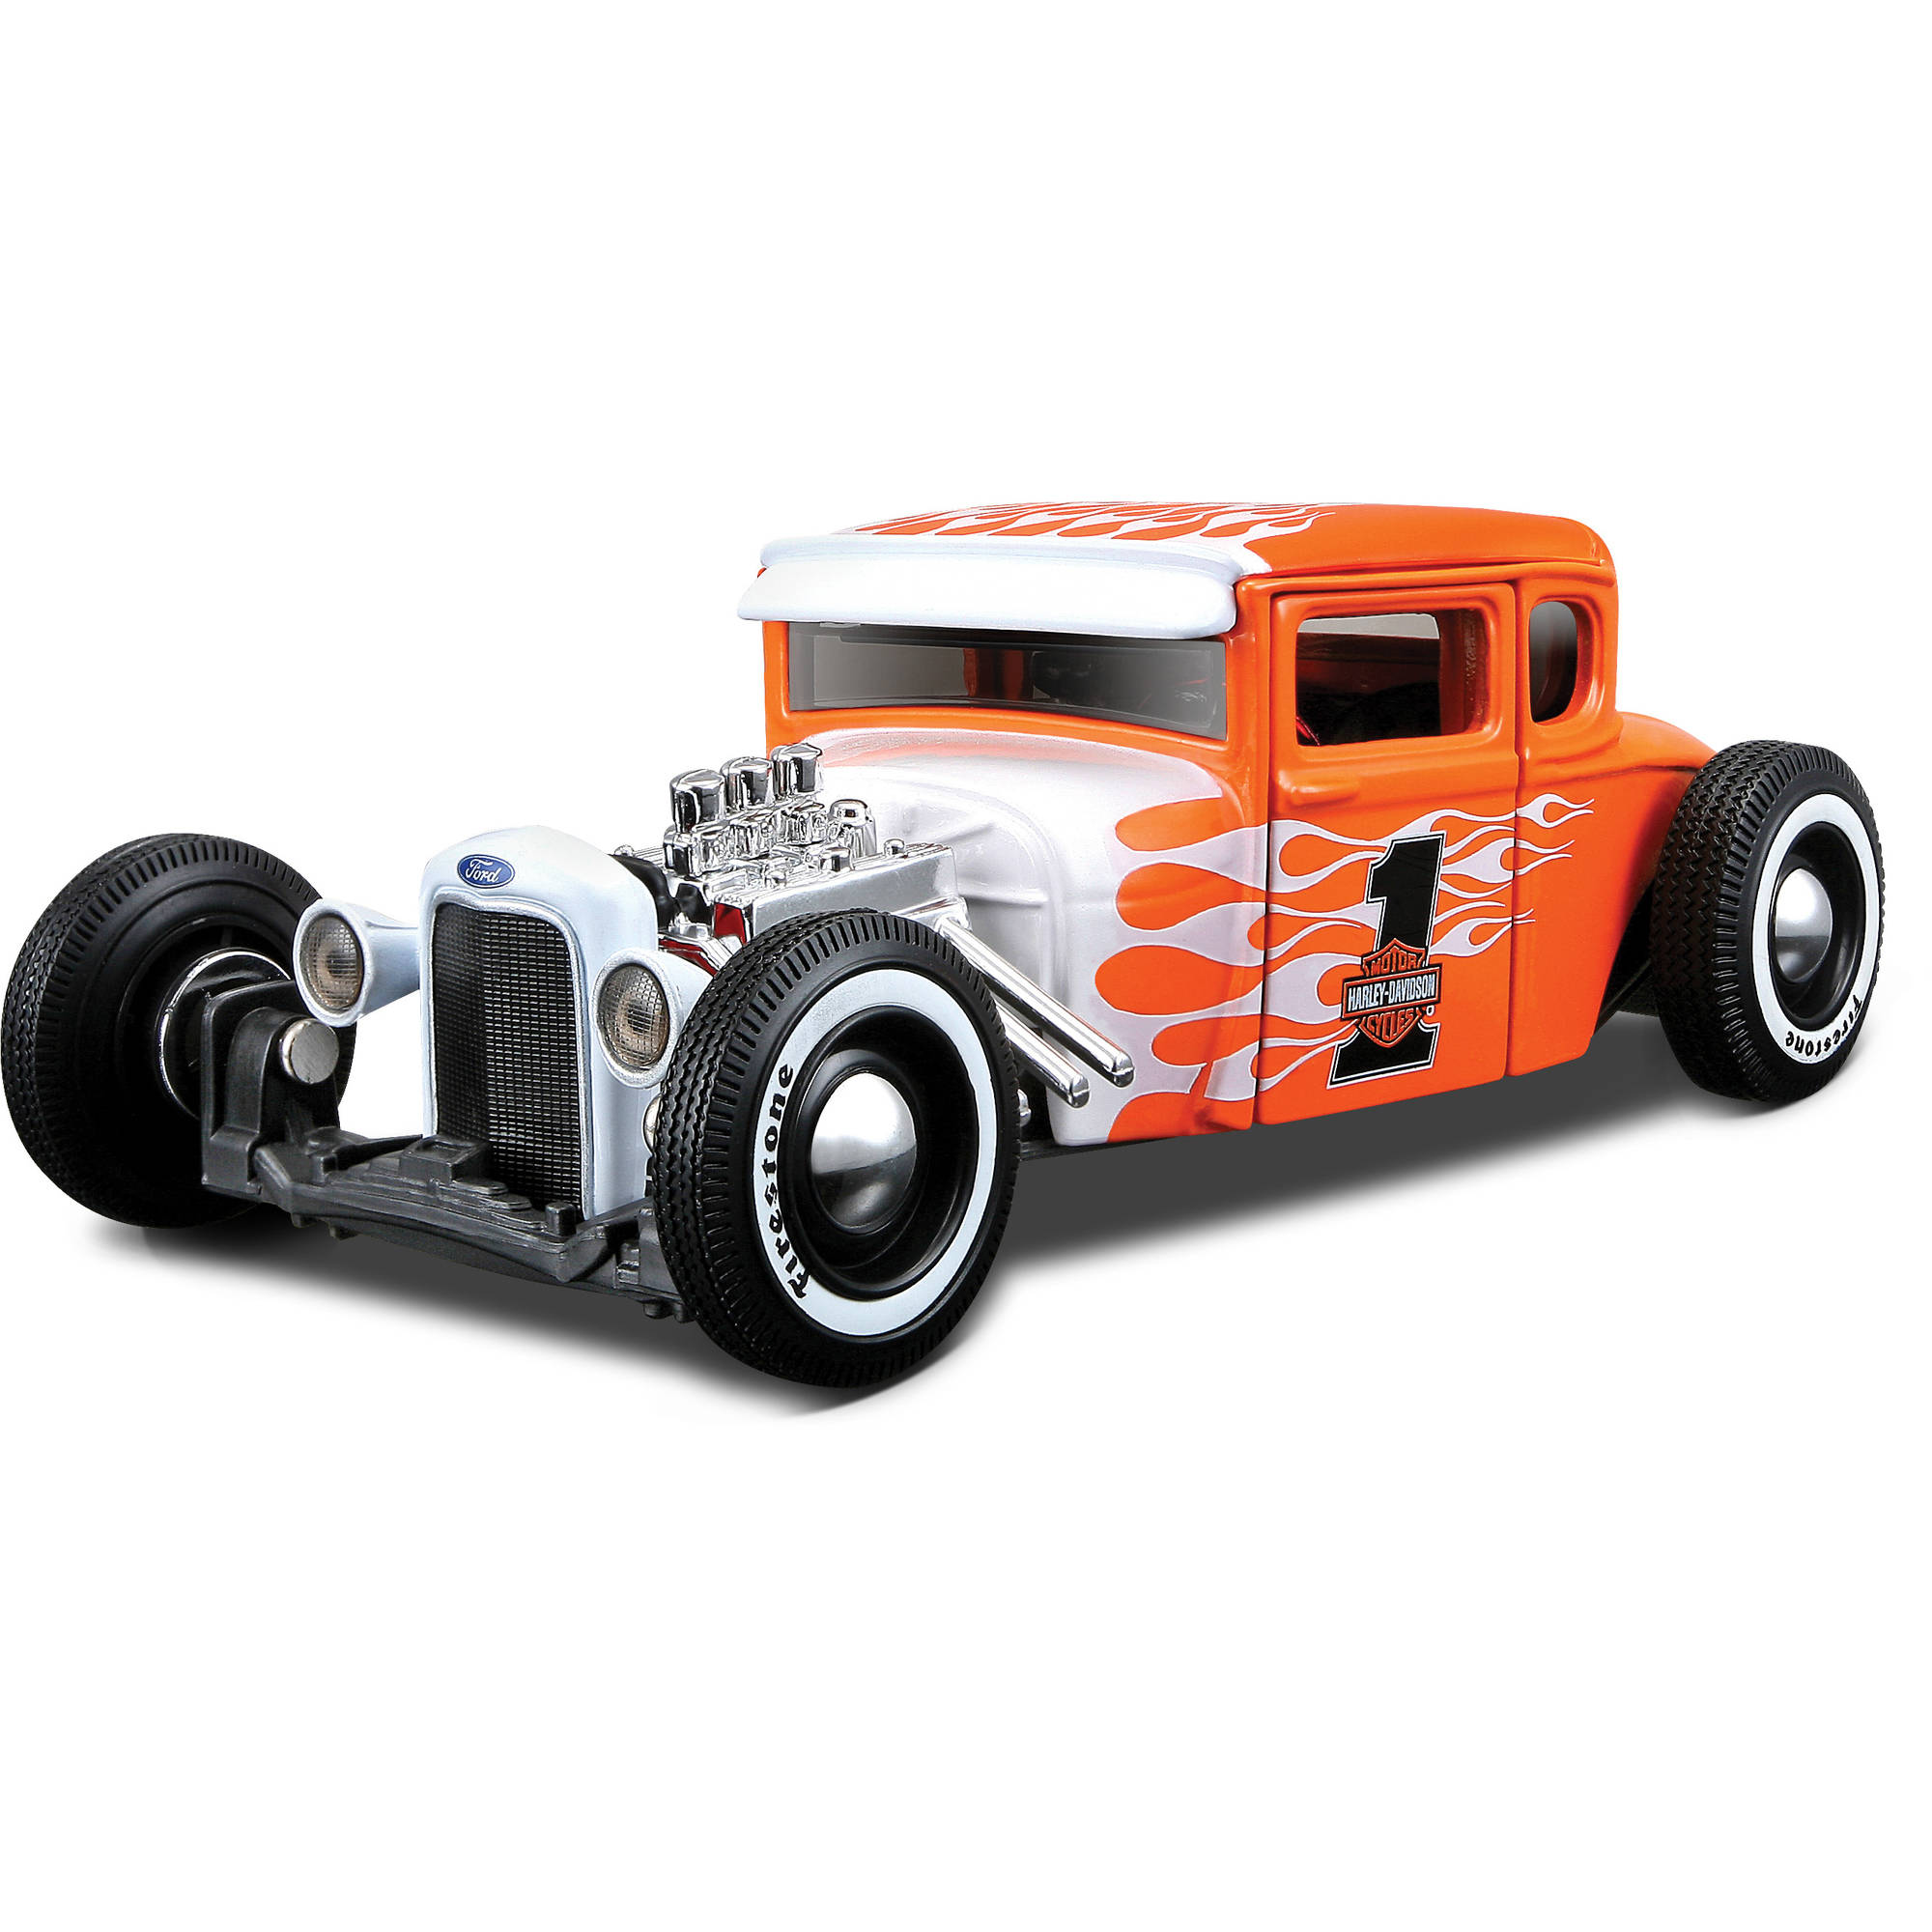 Harley Davidson Themed 1:24 Ford 1929 Model A by Generic